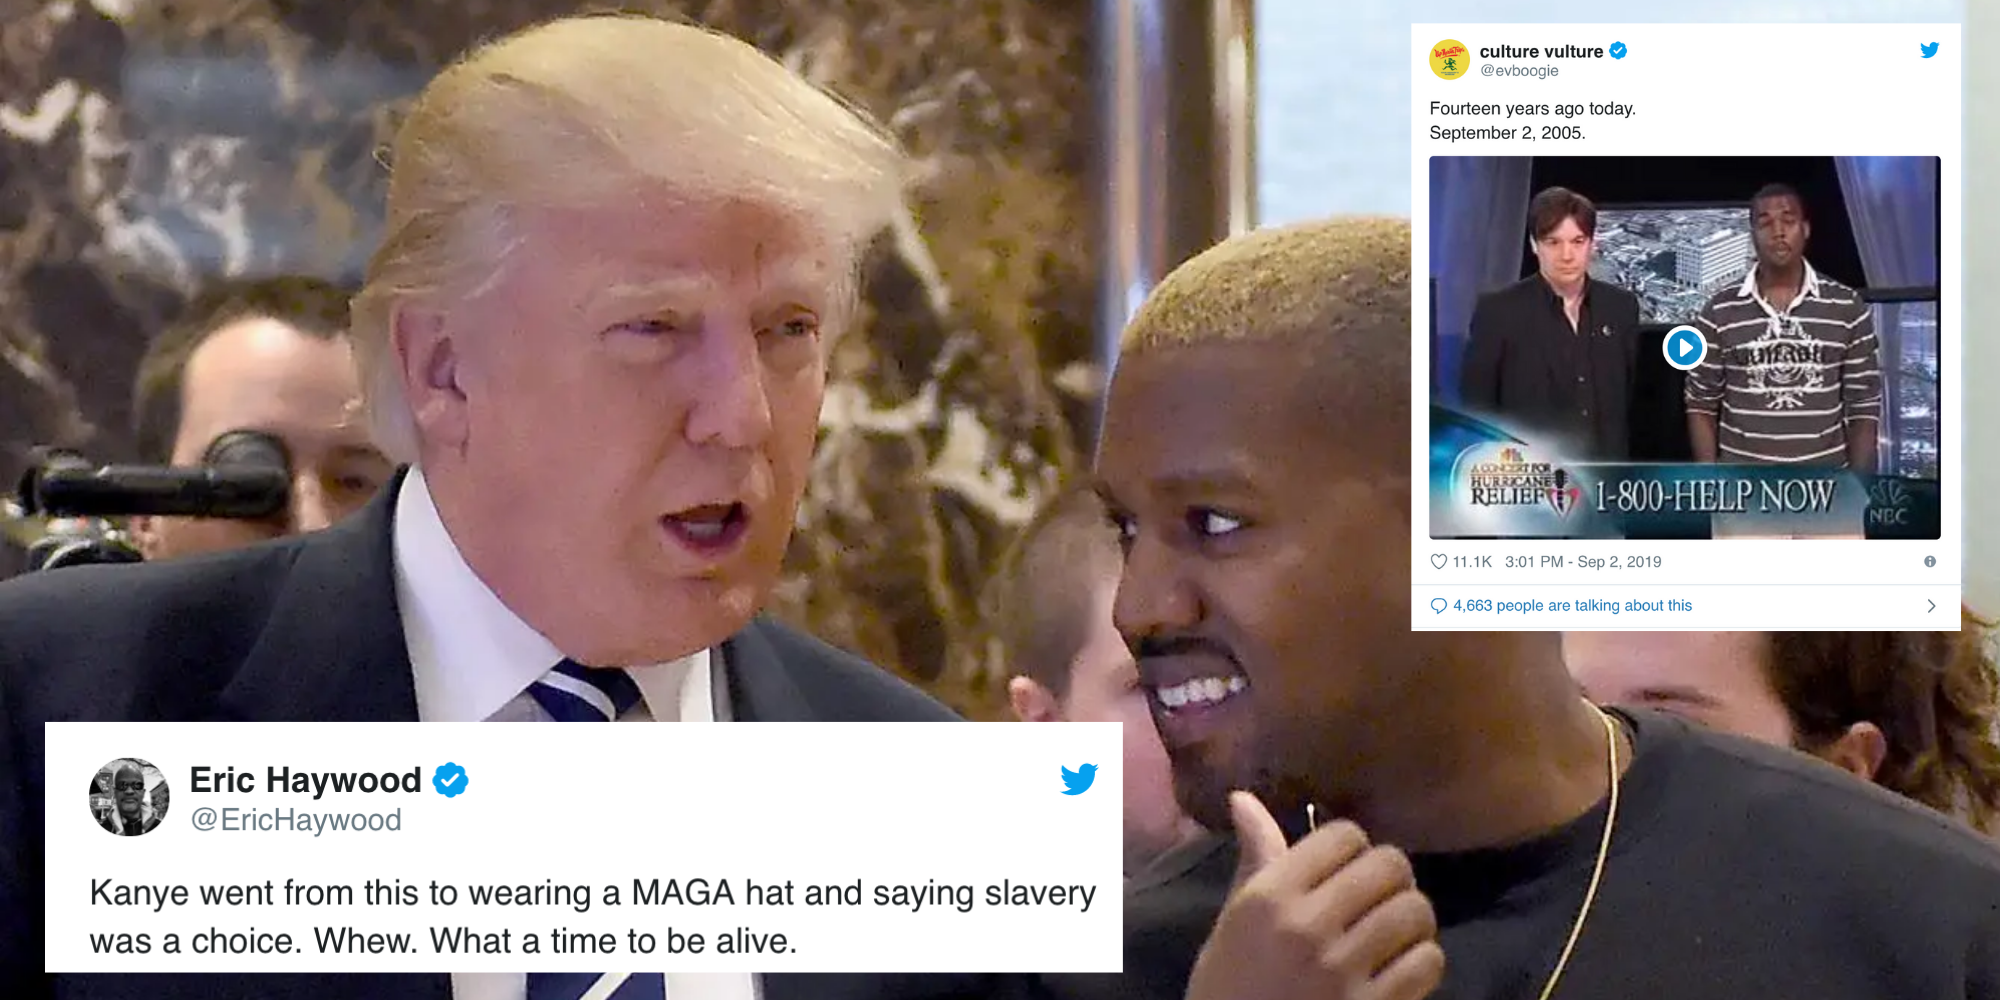 It's been 14 years since Kanye West said 'George Bush doesn't care about black people' and everyone misses old Kanye